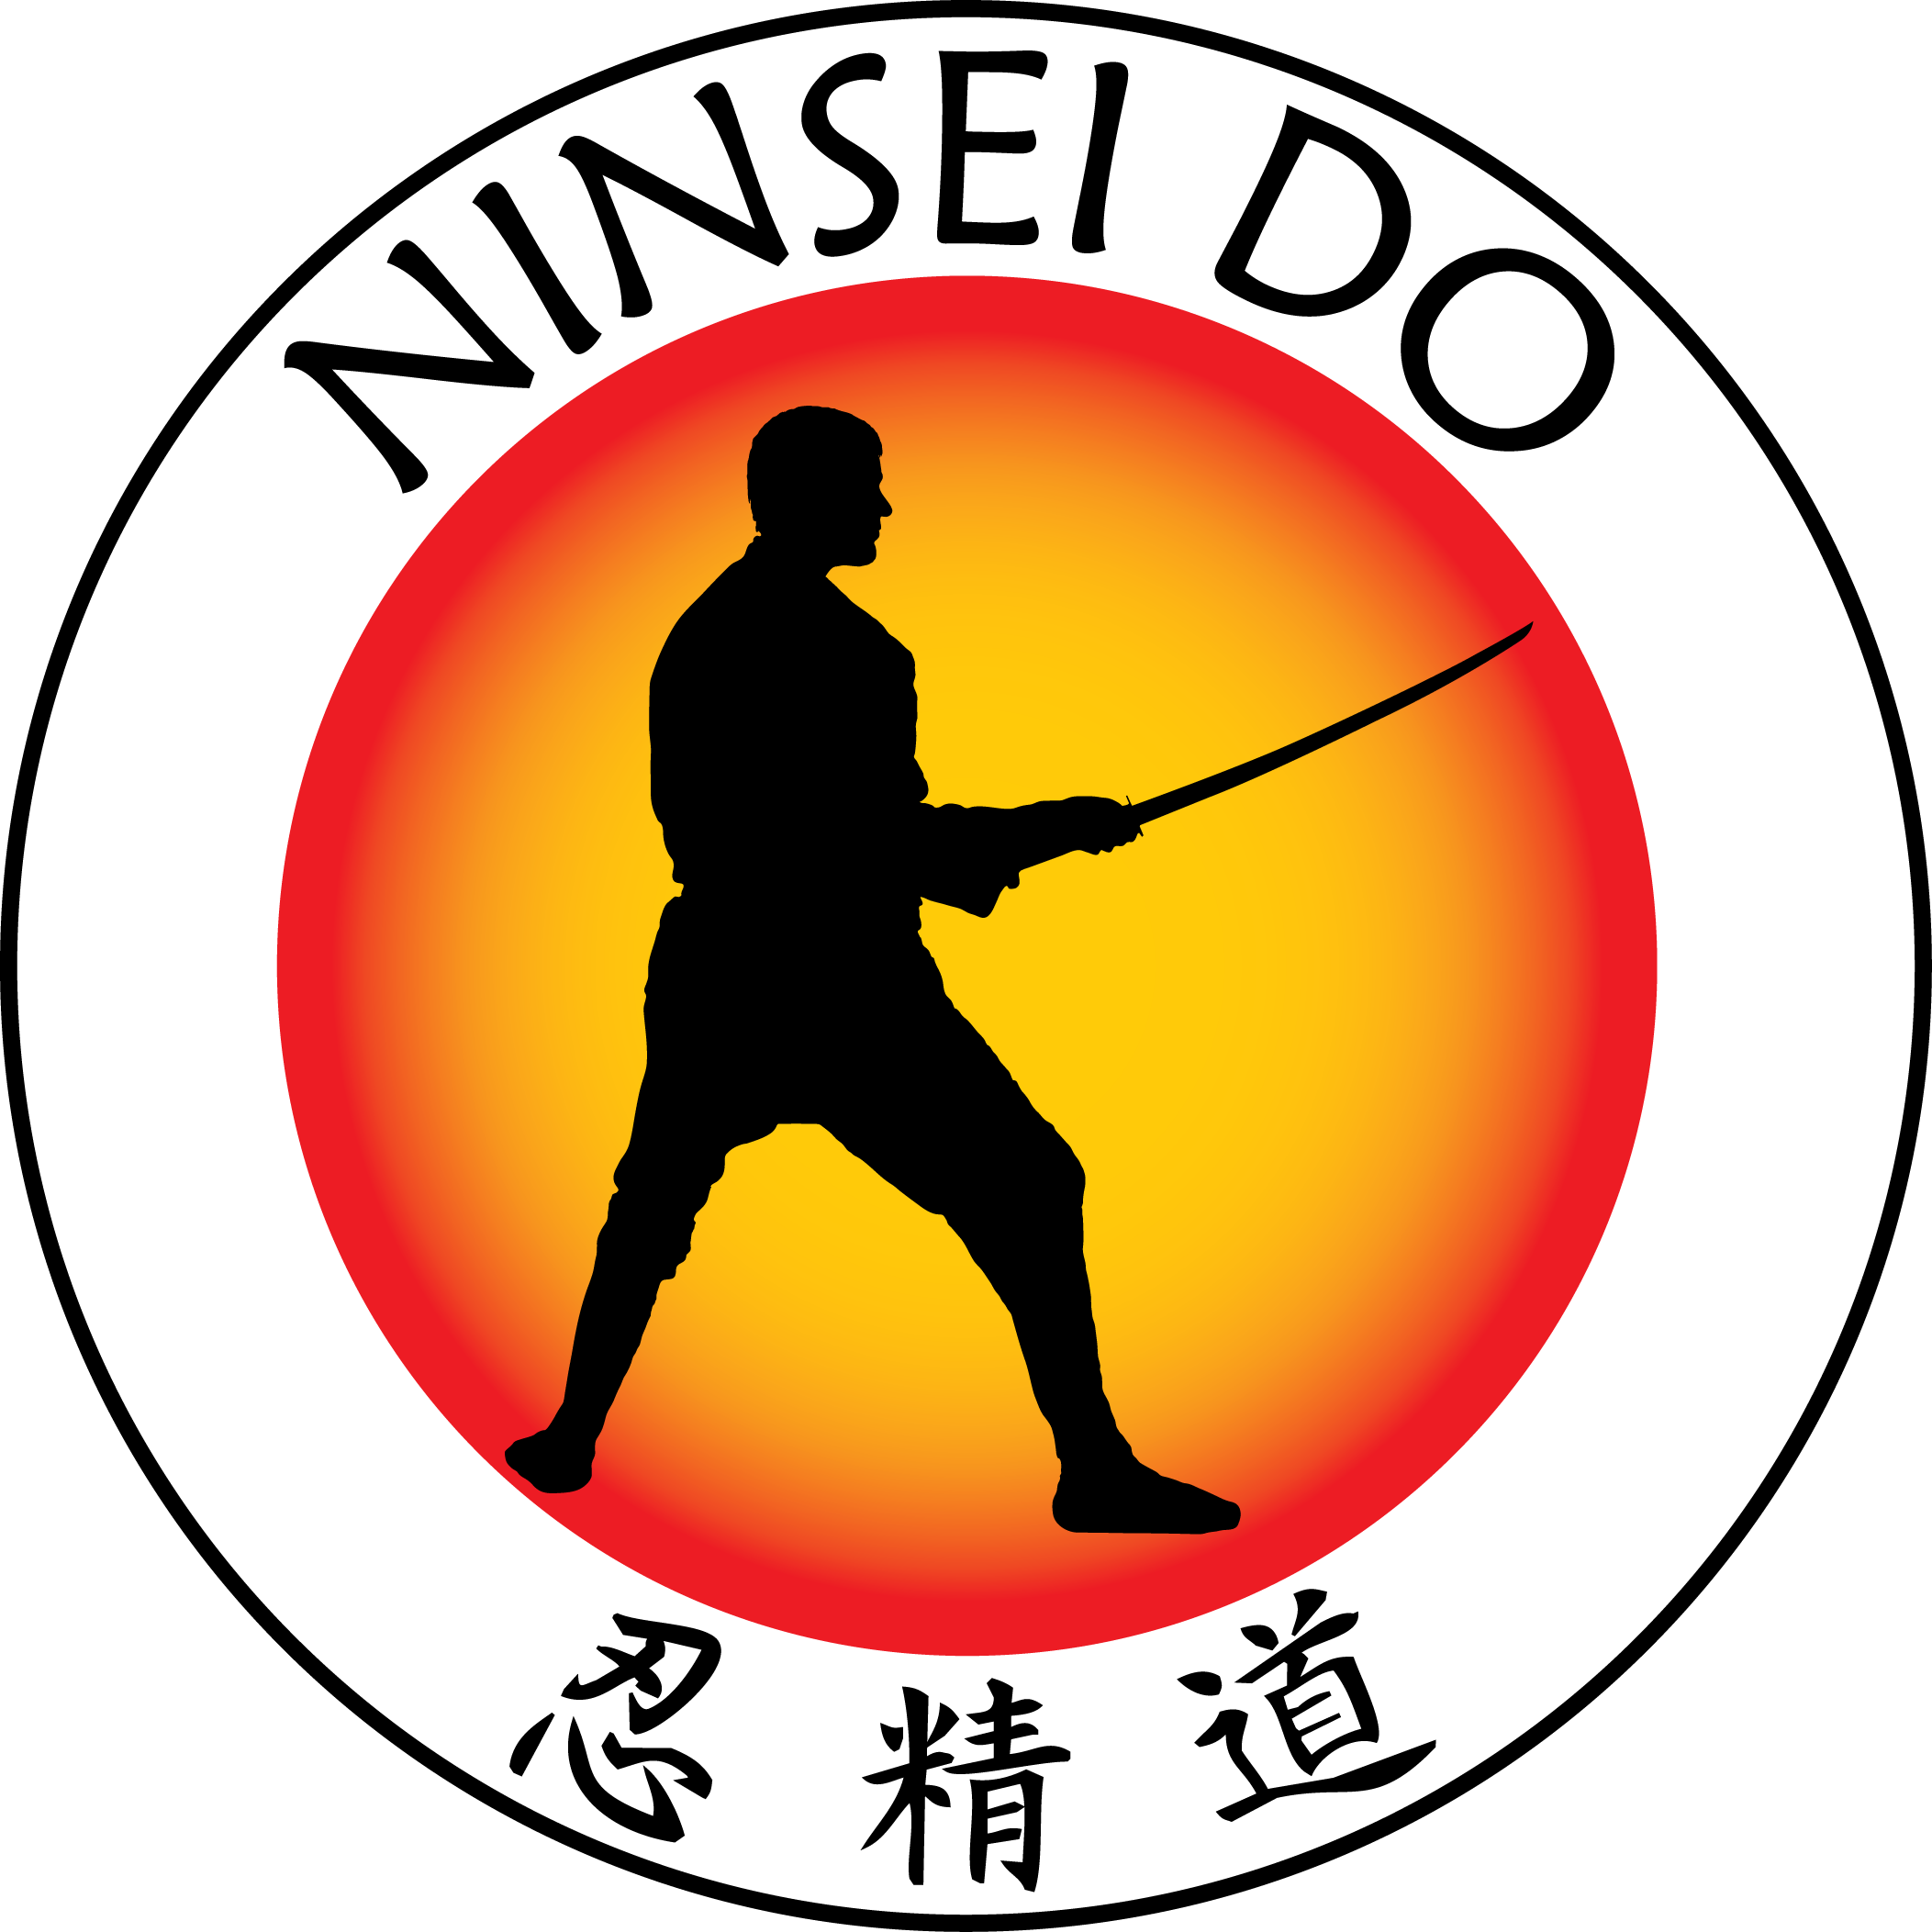 Ninsei Do logo